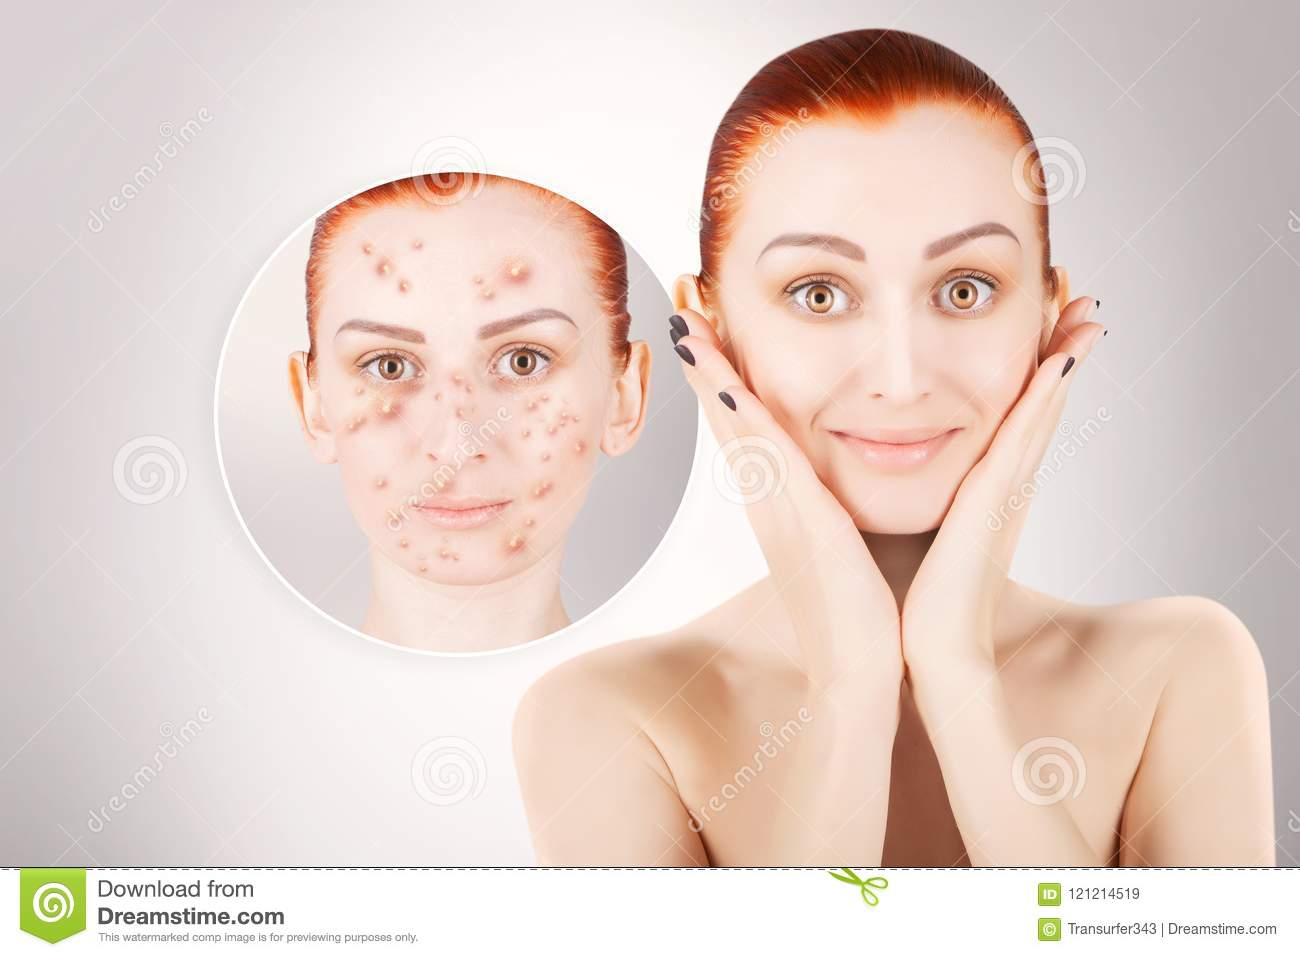 Acne problems, red haired woman portrait over grey background